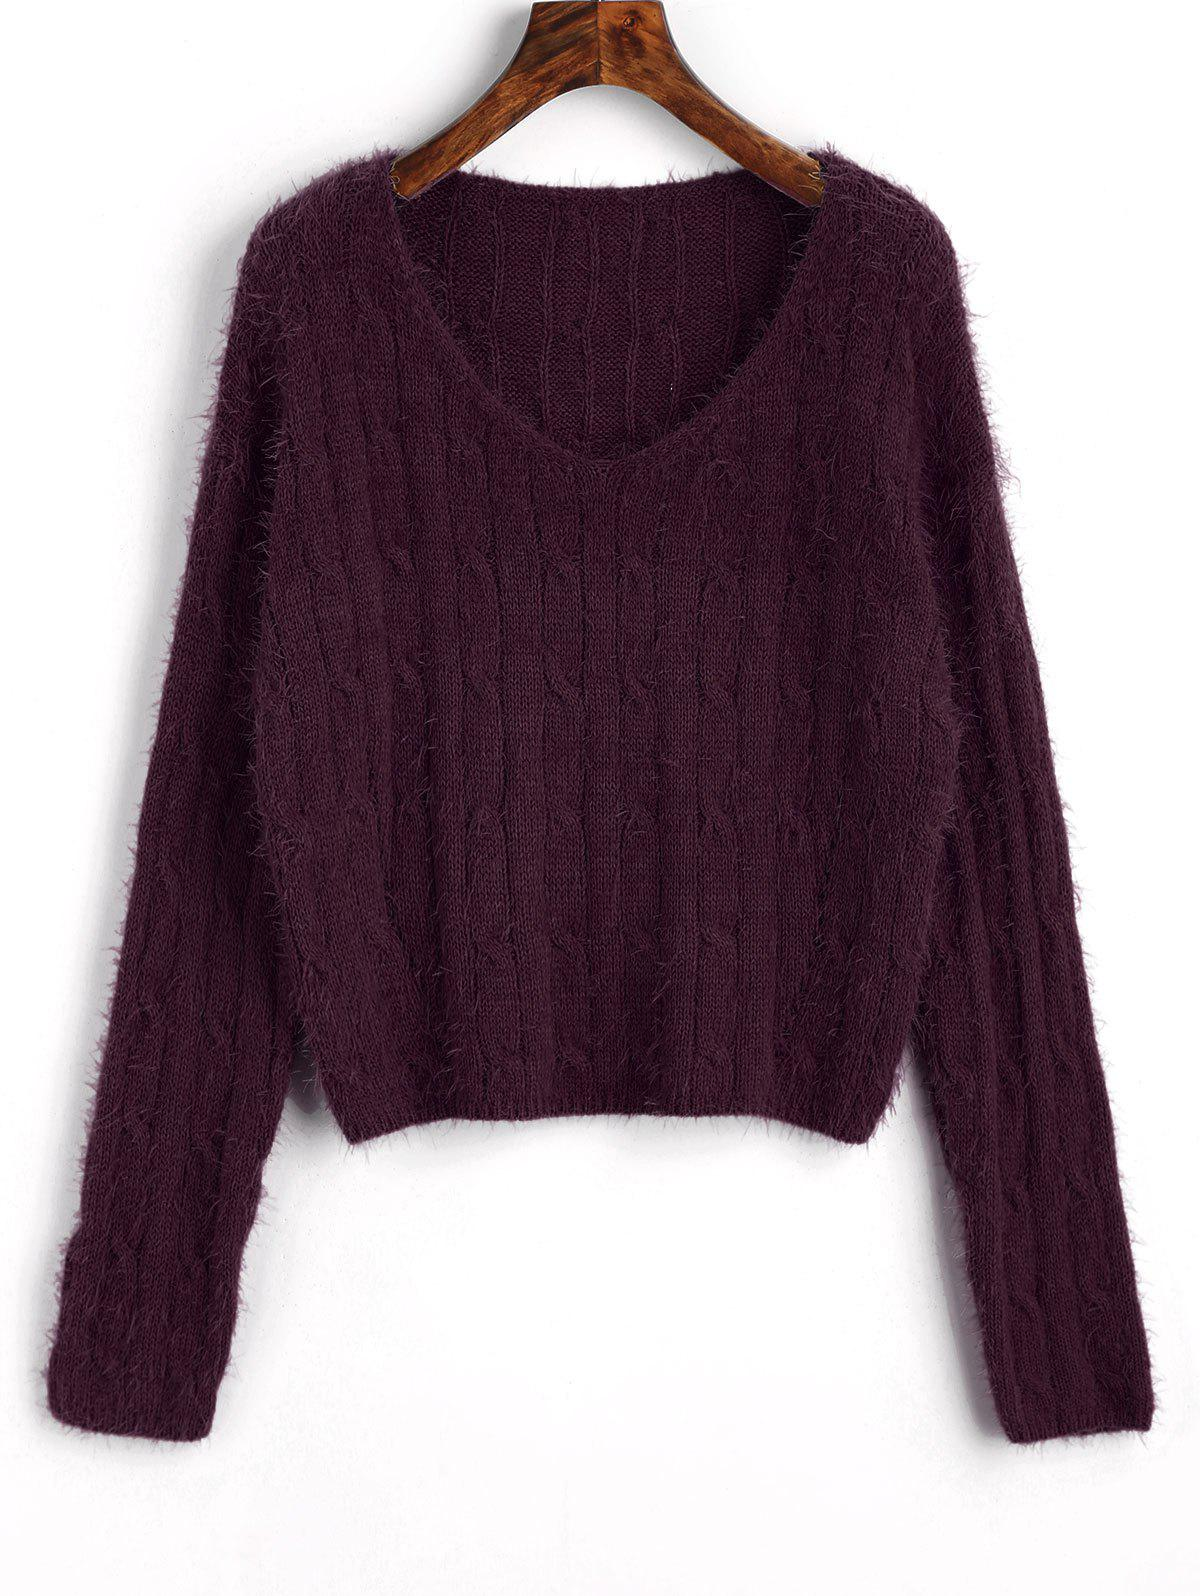 Fancy Cable Knit Textured Cropped Sweater